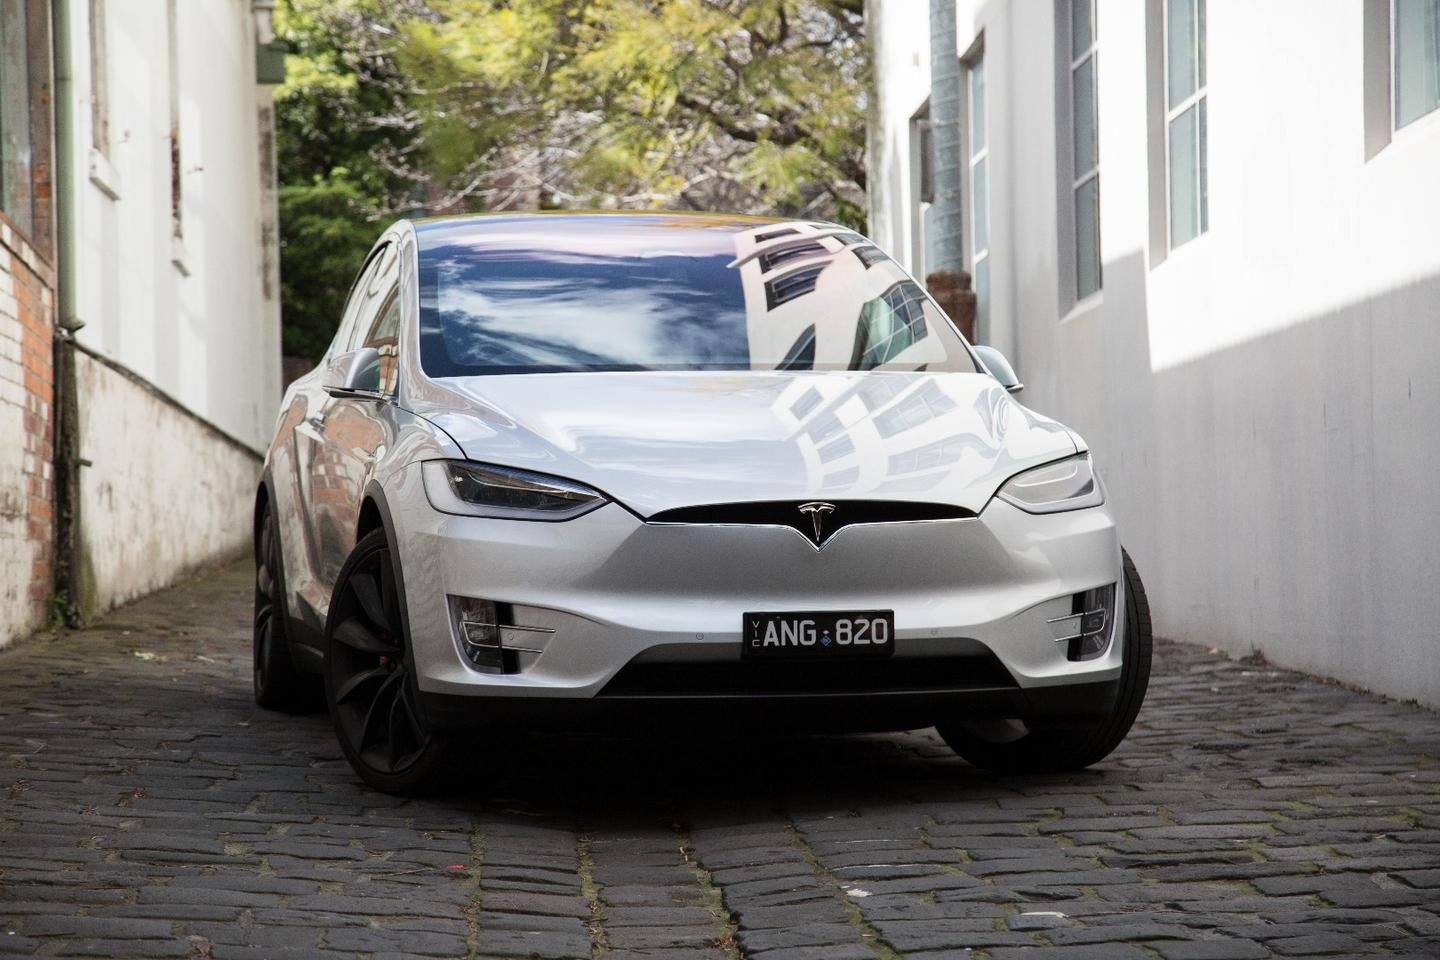 Without an engine to cool, the ModelXcan do without a front grille